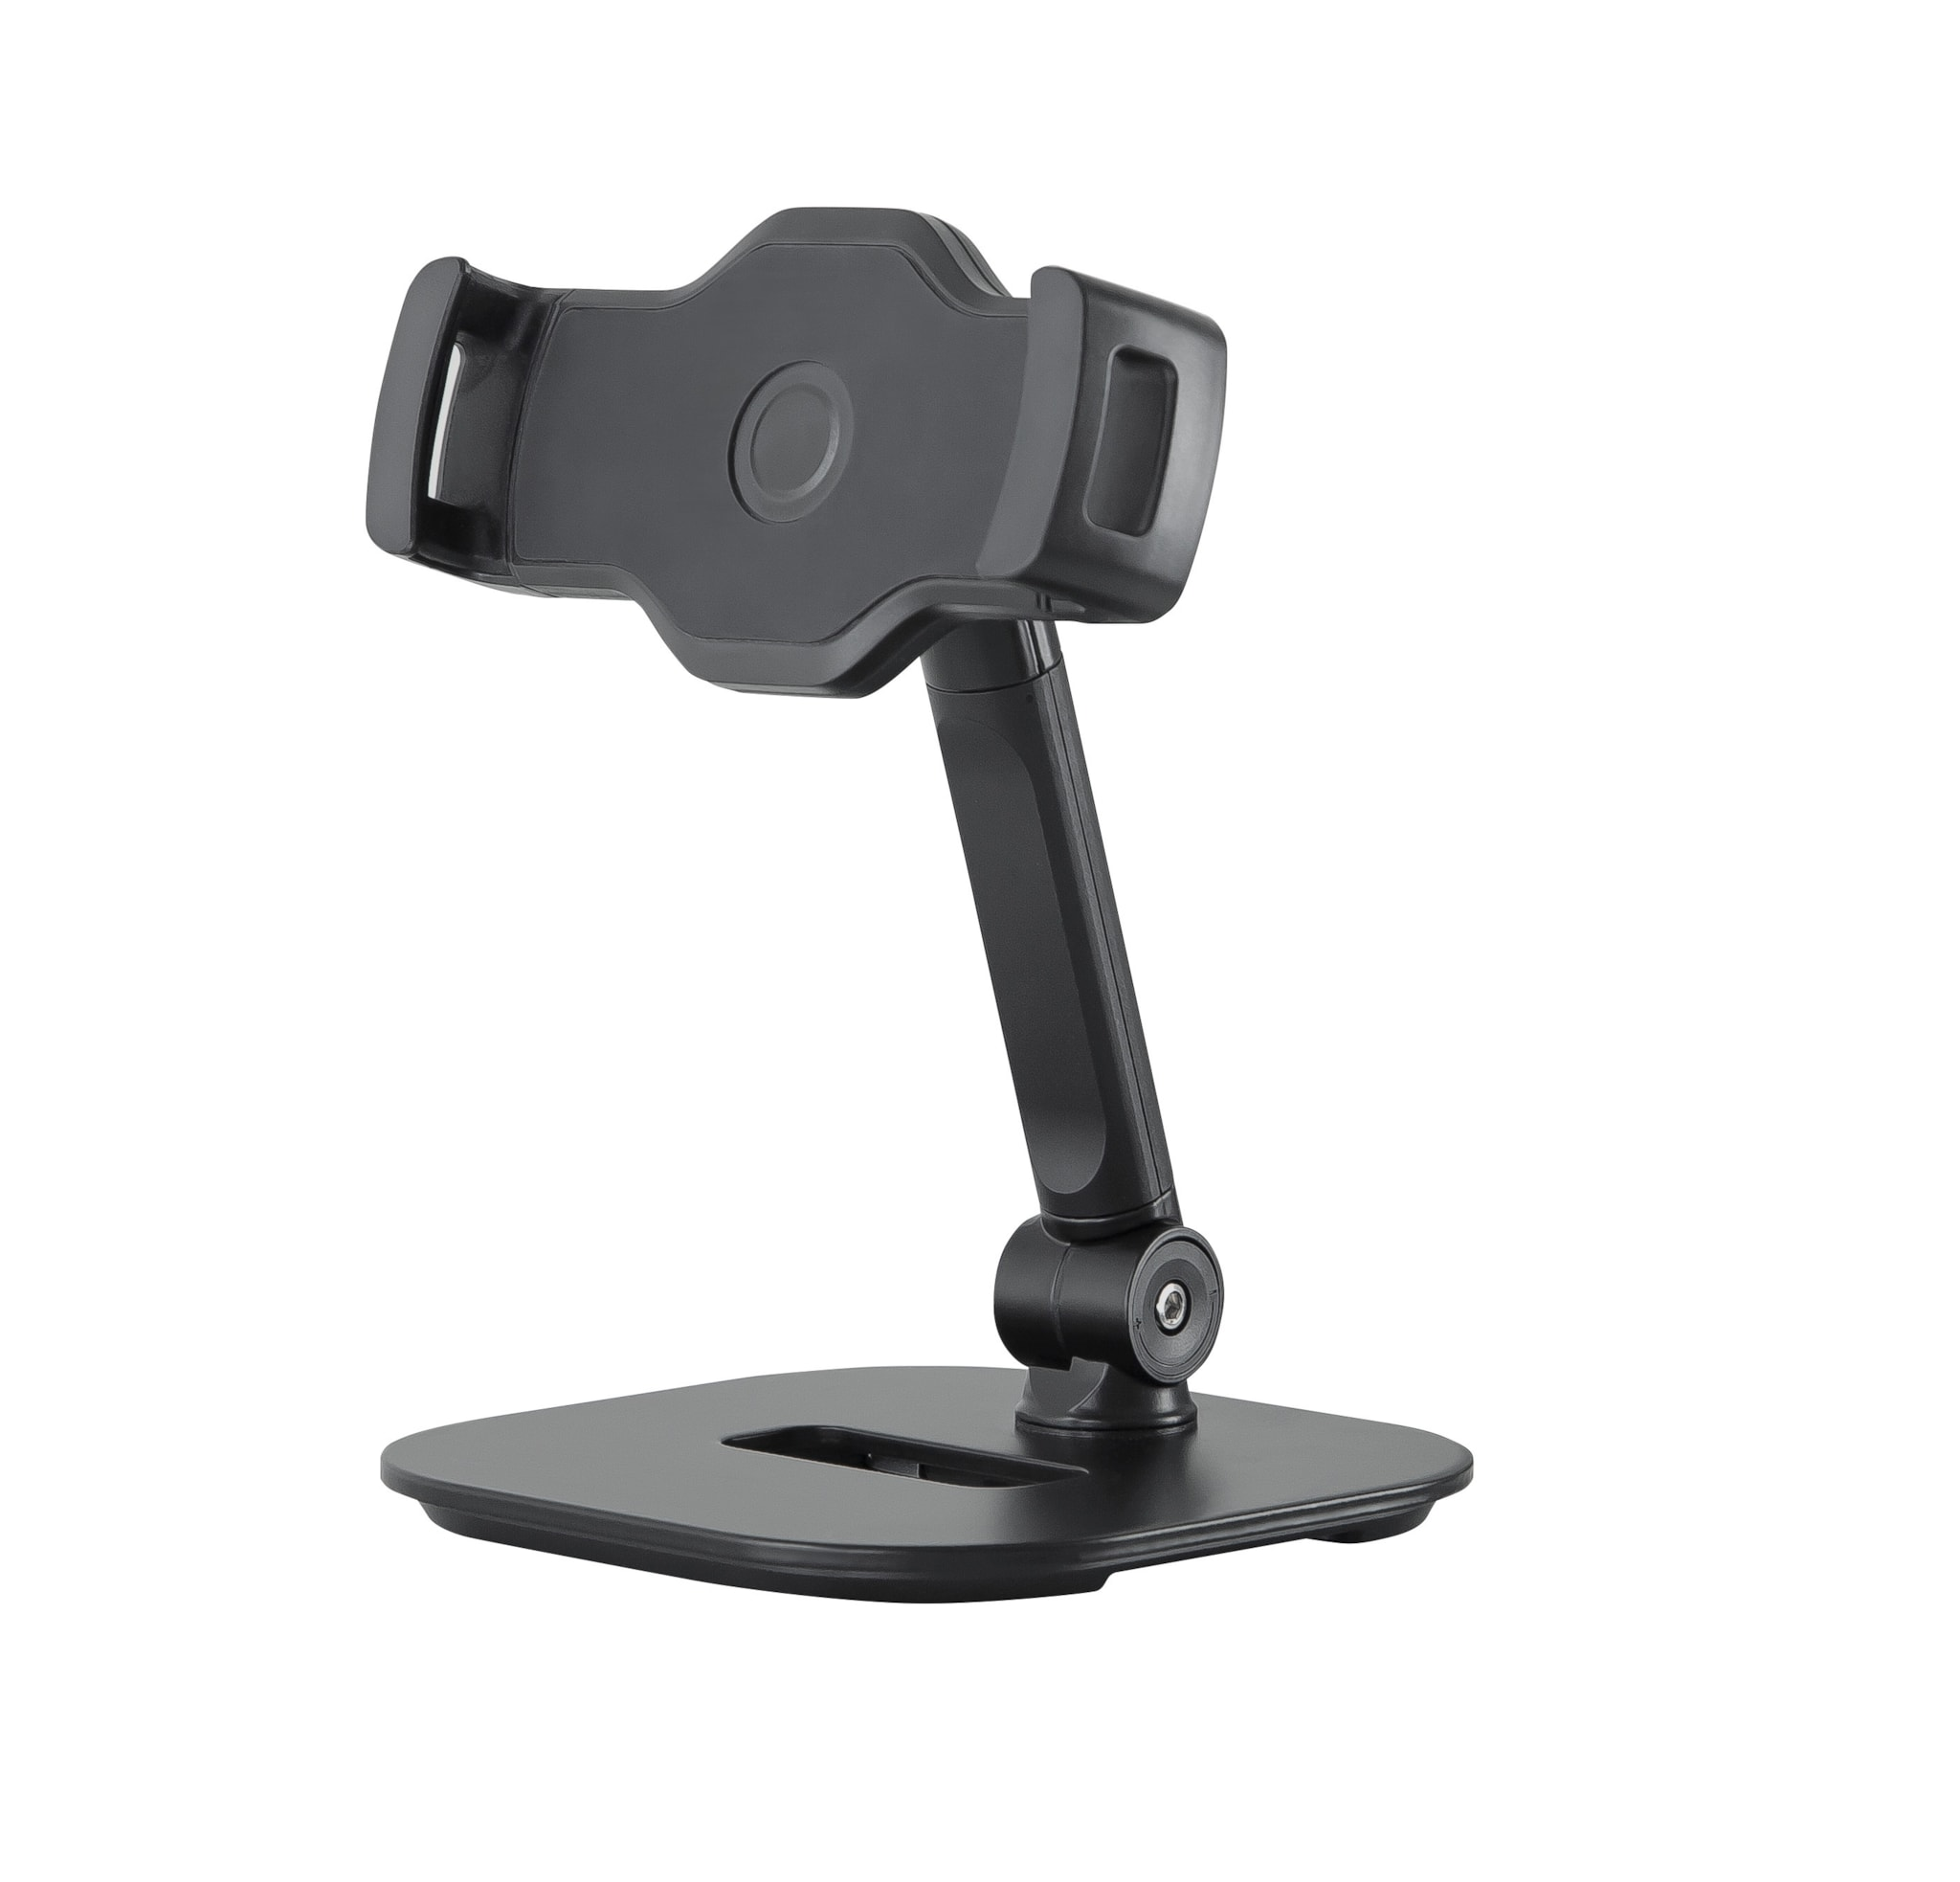 KM19800 - Smartphone and tablet PC table stand